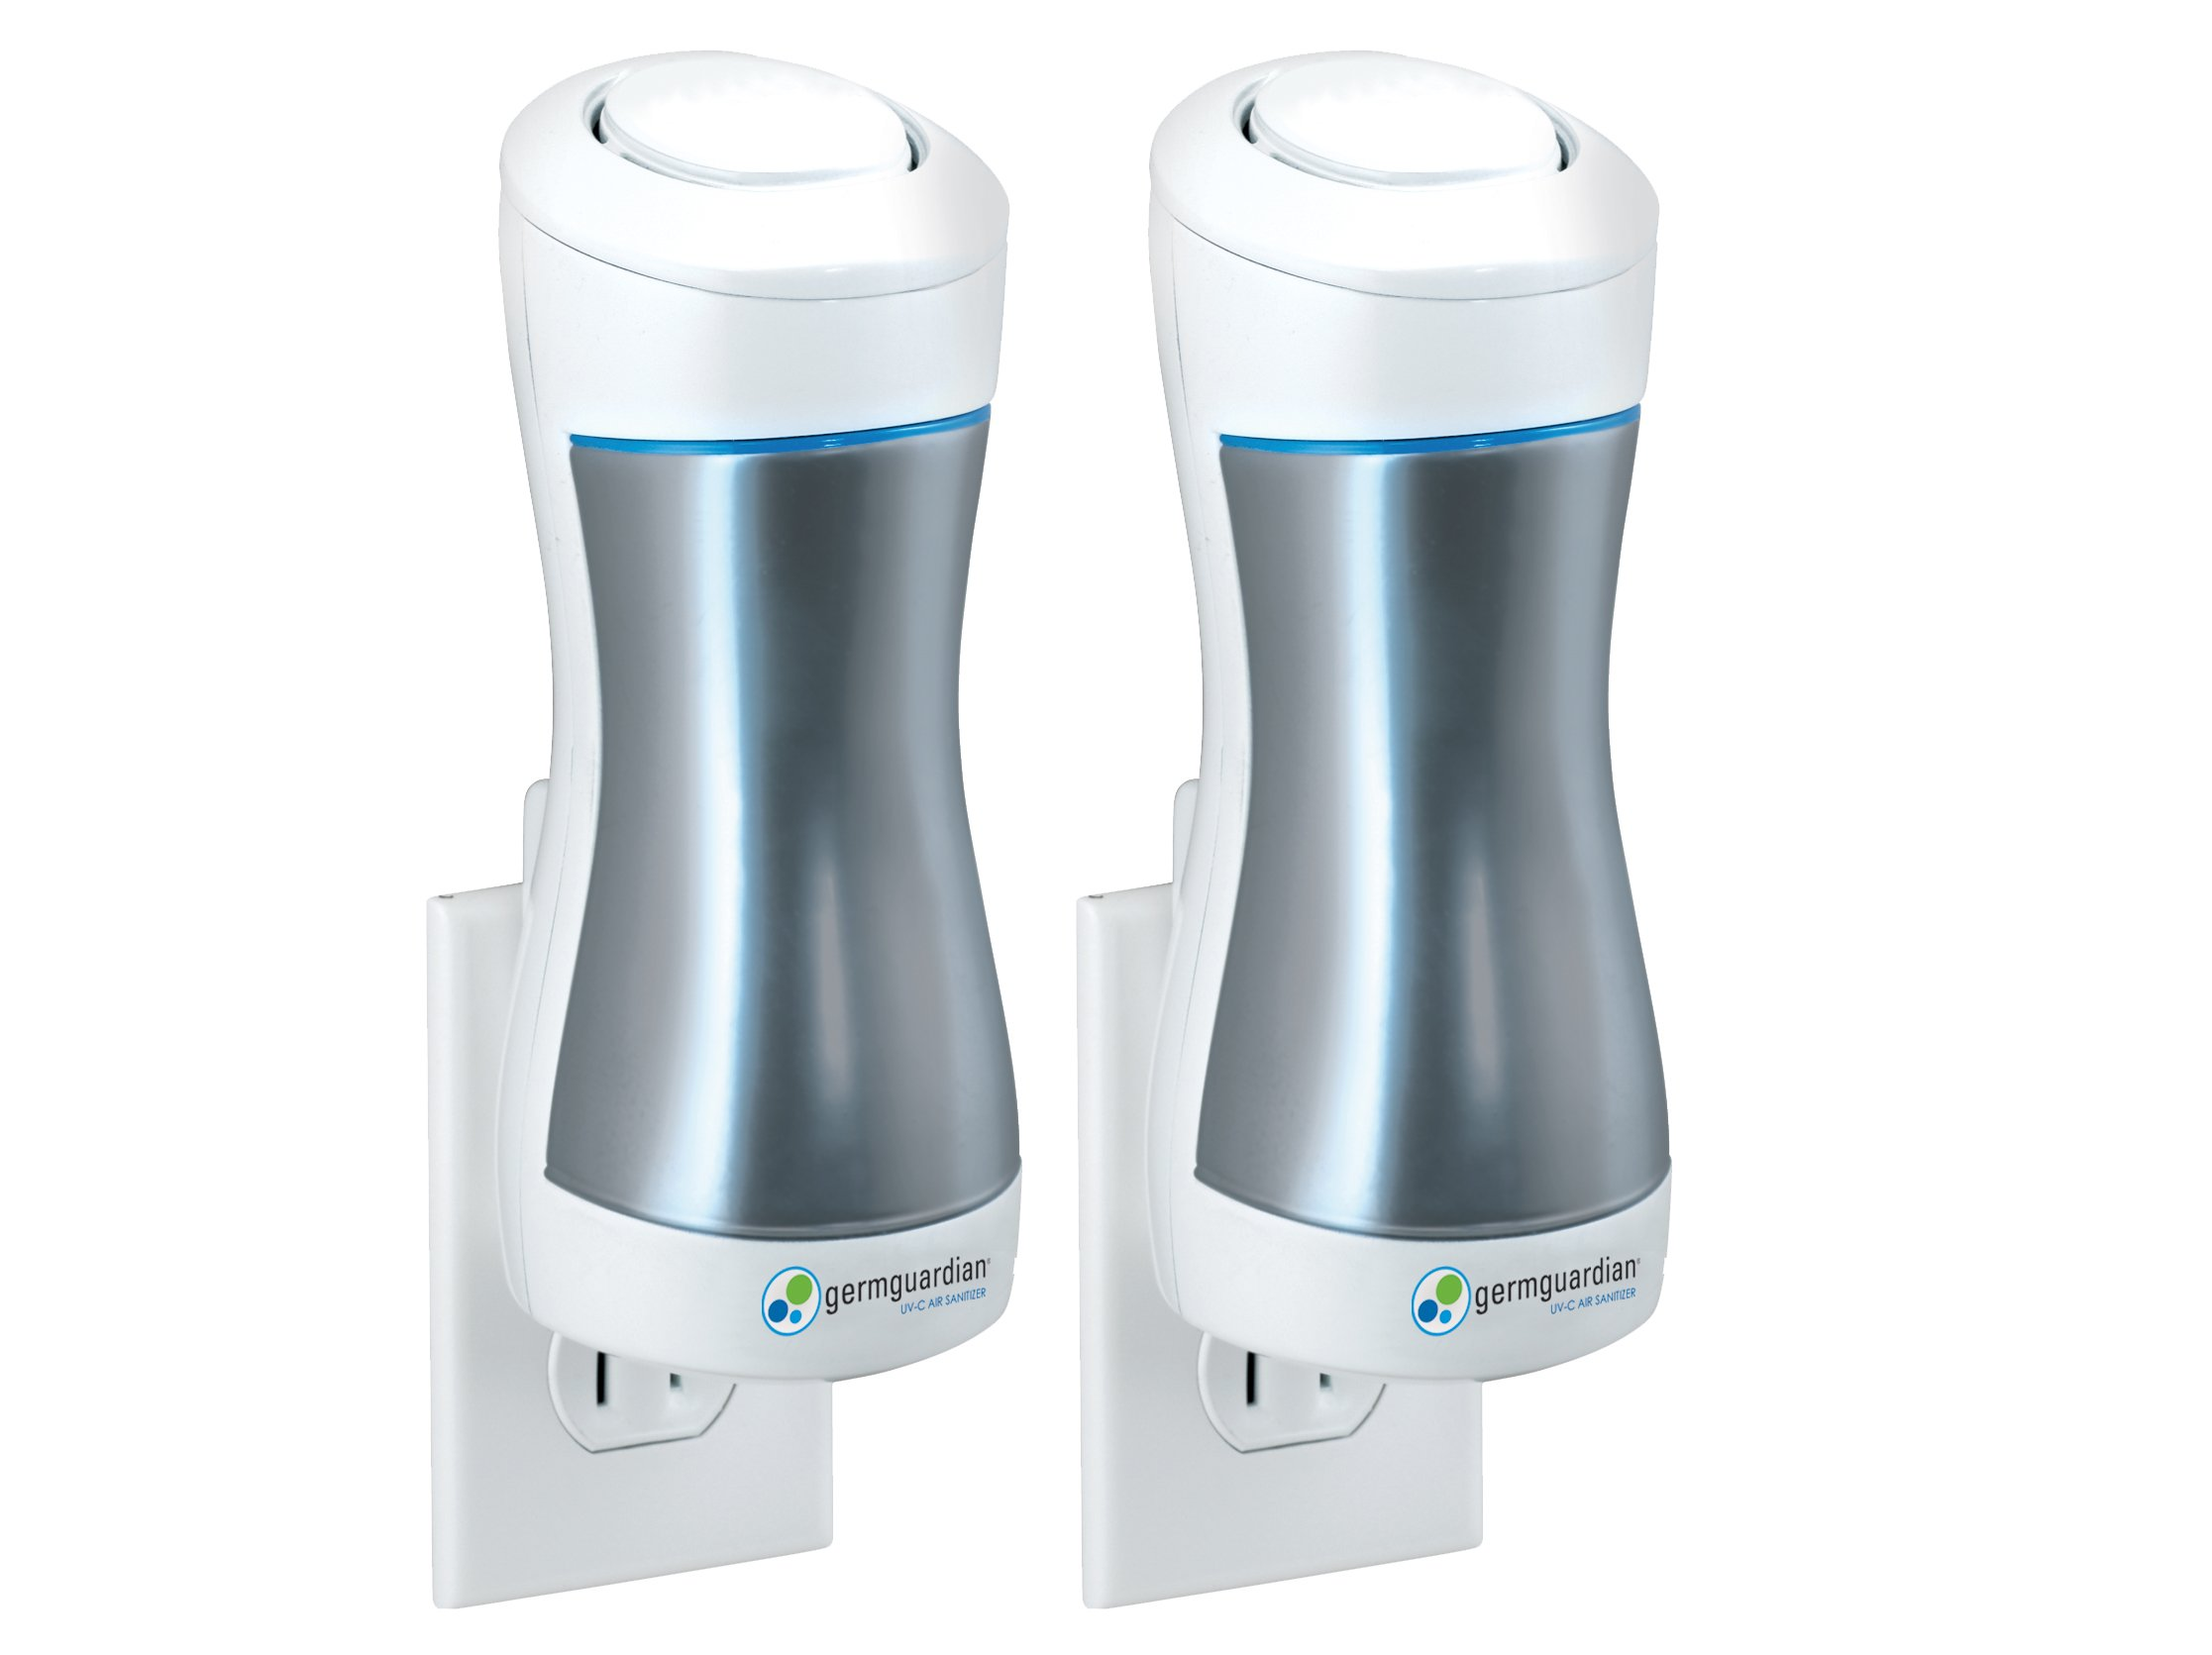 Guardian Technologies GG10002PK GermGuardian GG1000 Pluggable UV-C Sanitizer and Deodorizer, Kills Germs, Freshens Air and Reduces Odors from Pets, Smoke, Mold, Cooking and Laundry, 2-PACK by Guardian Technologies